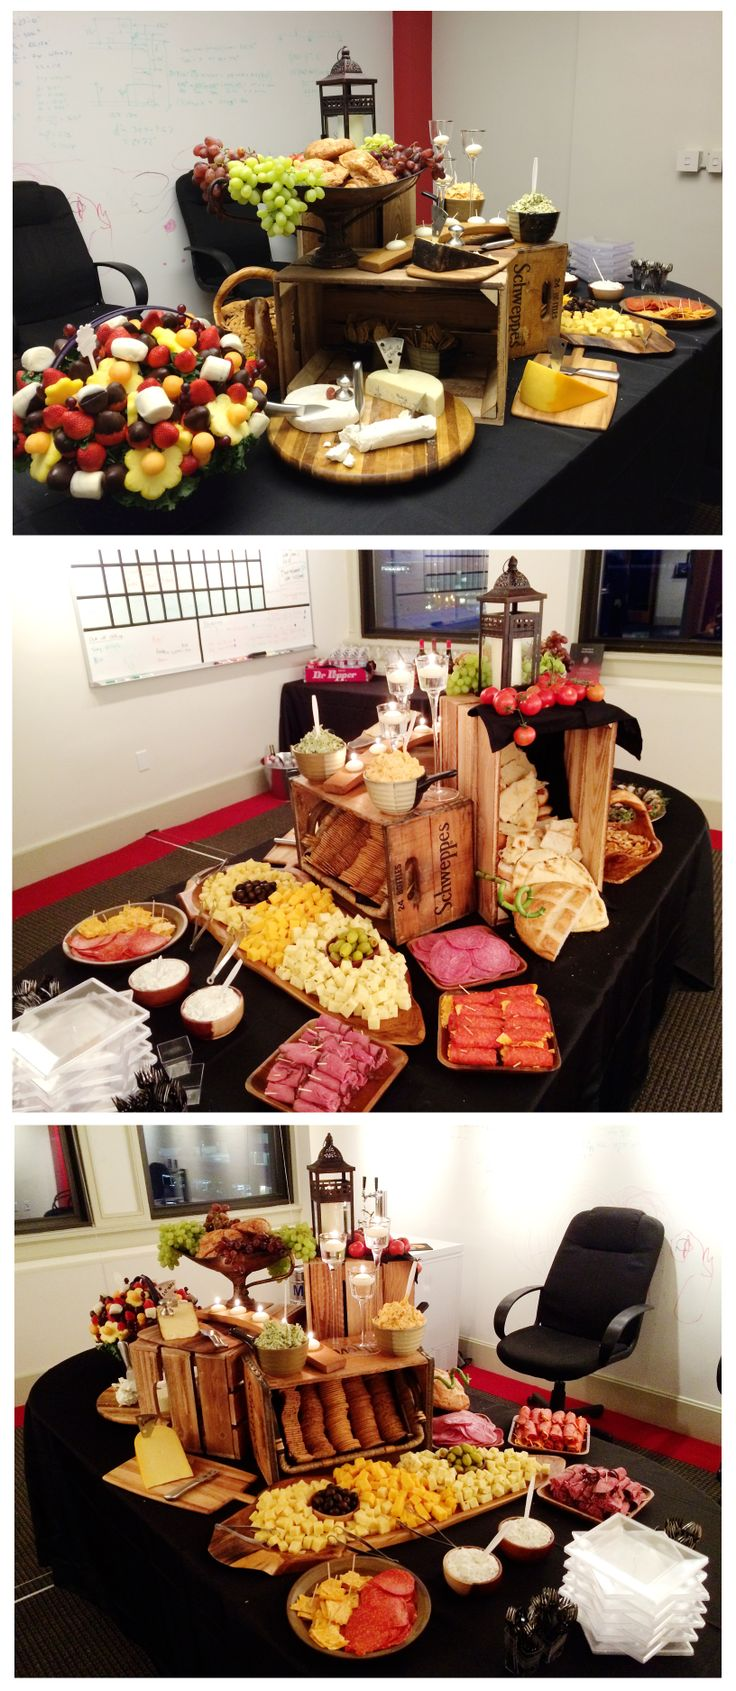 cheese and meat display, artisan catered hors d'oeuvres, rustic food tablescape . Setup with crates, glass candle holders, lantern, wood cheese trays, edible arrangement . We set this up for a company party, turned out great!